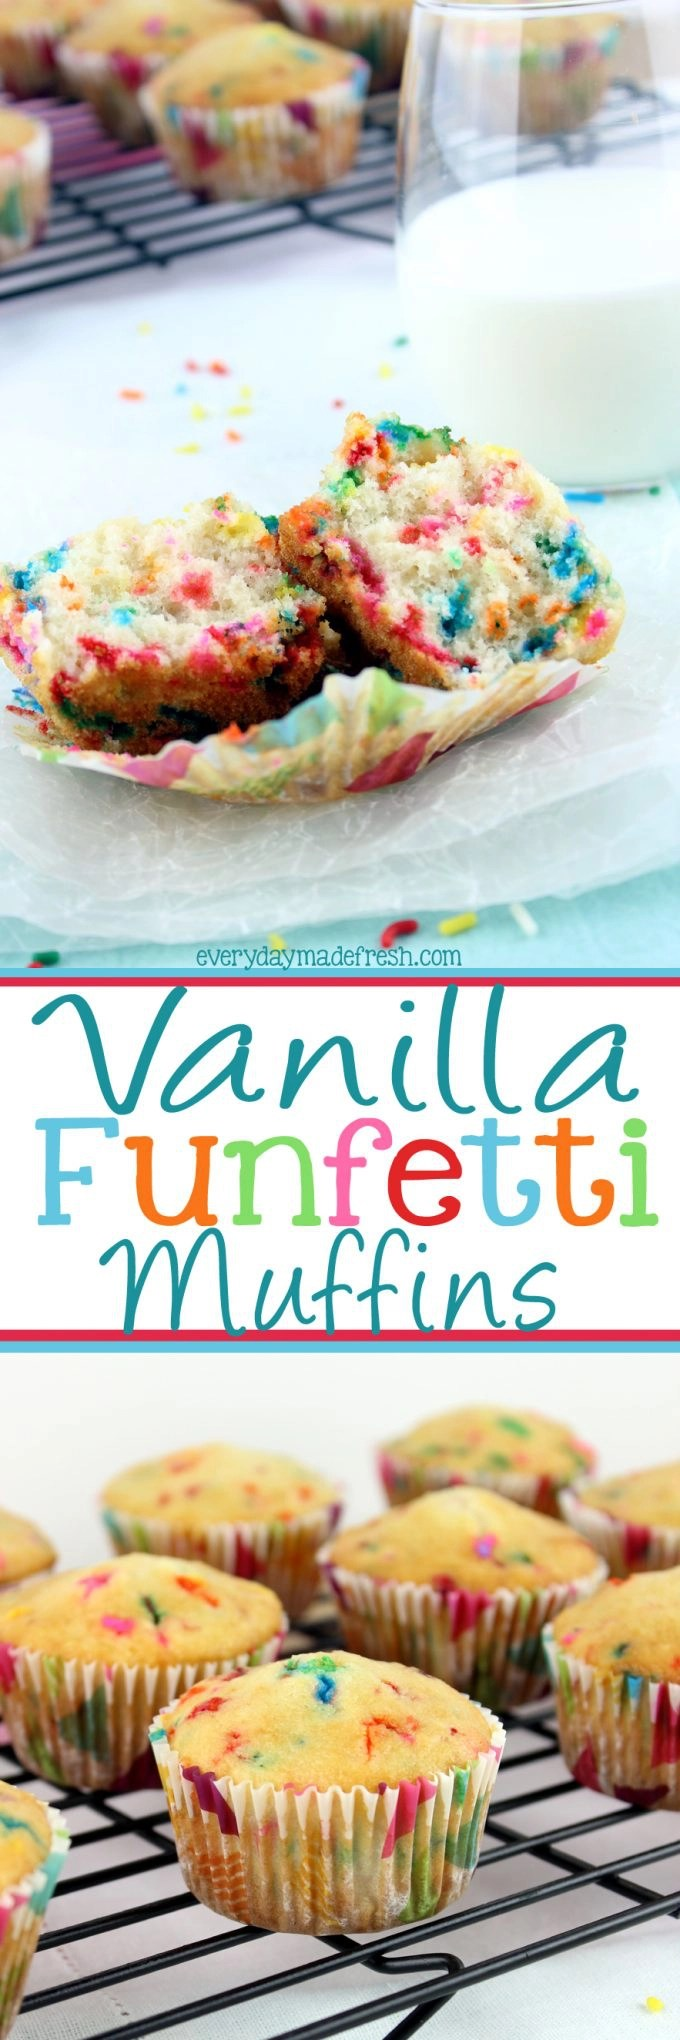 Start your morning with sprinkles! These Vanilla Funfetti Muffins are the funnest grab-and-go breakfast, and kids are gonna love them!   EverydayMadeFresh.com